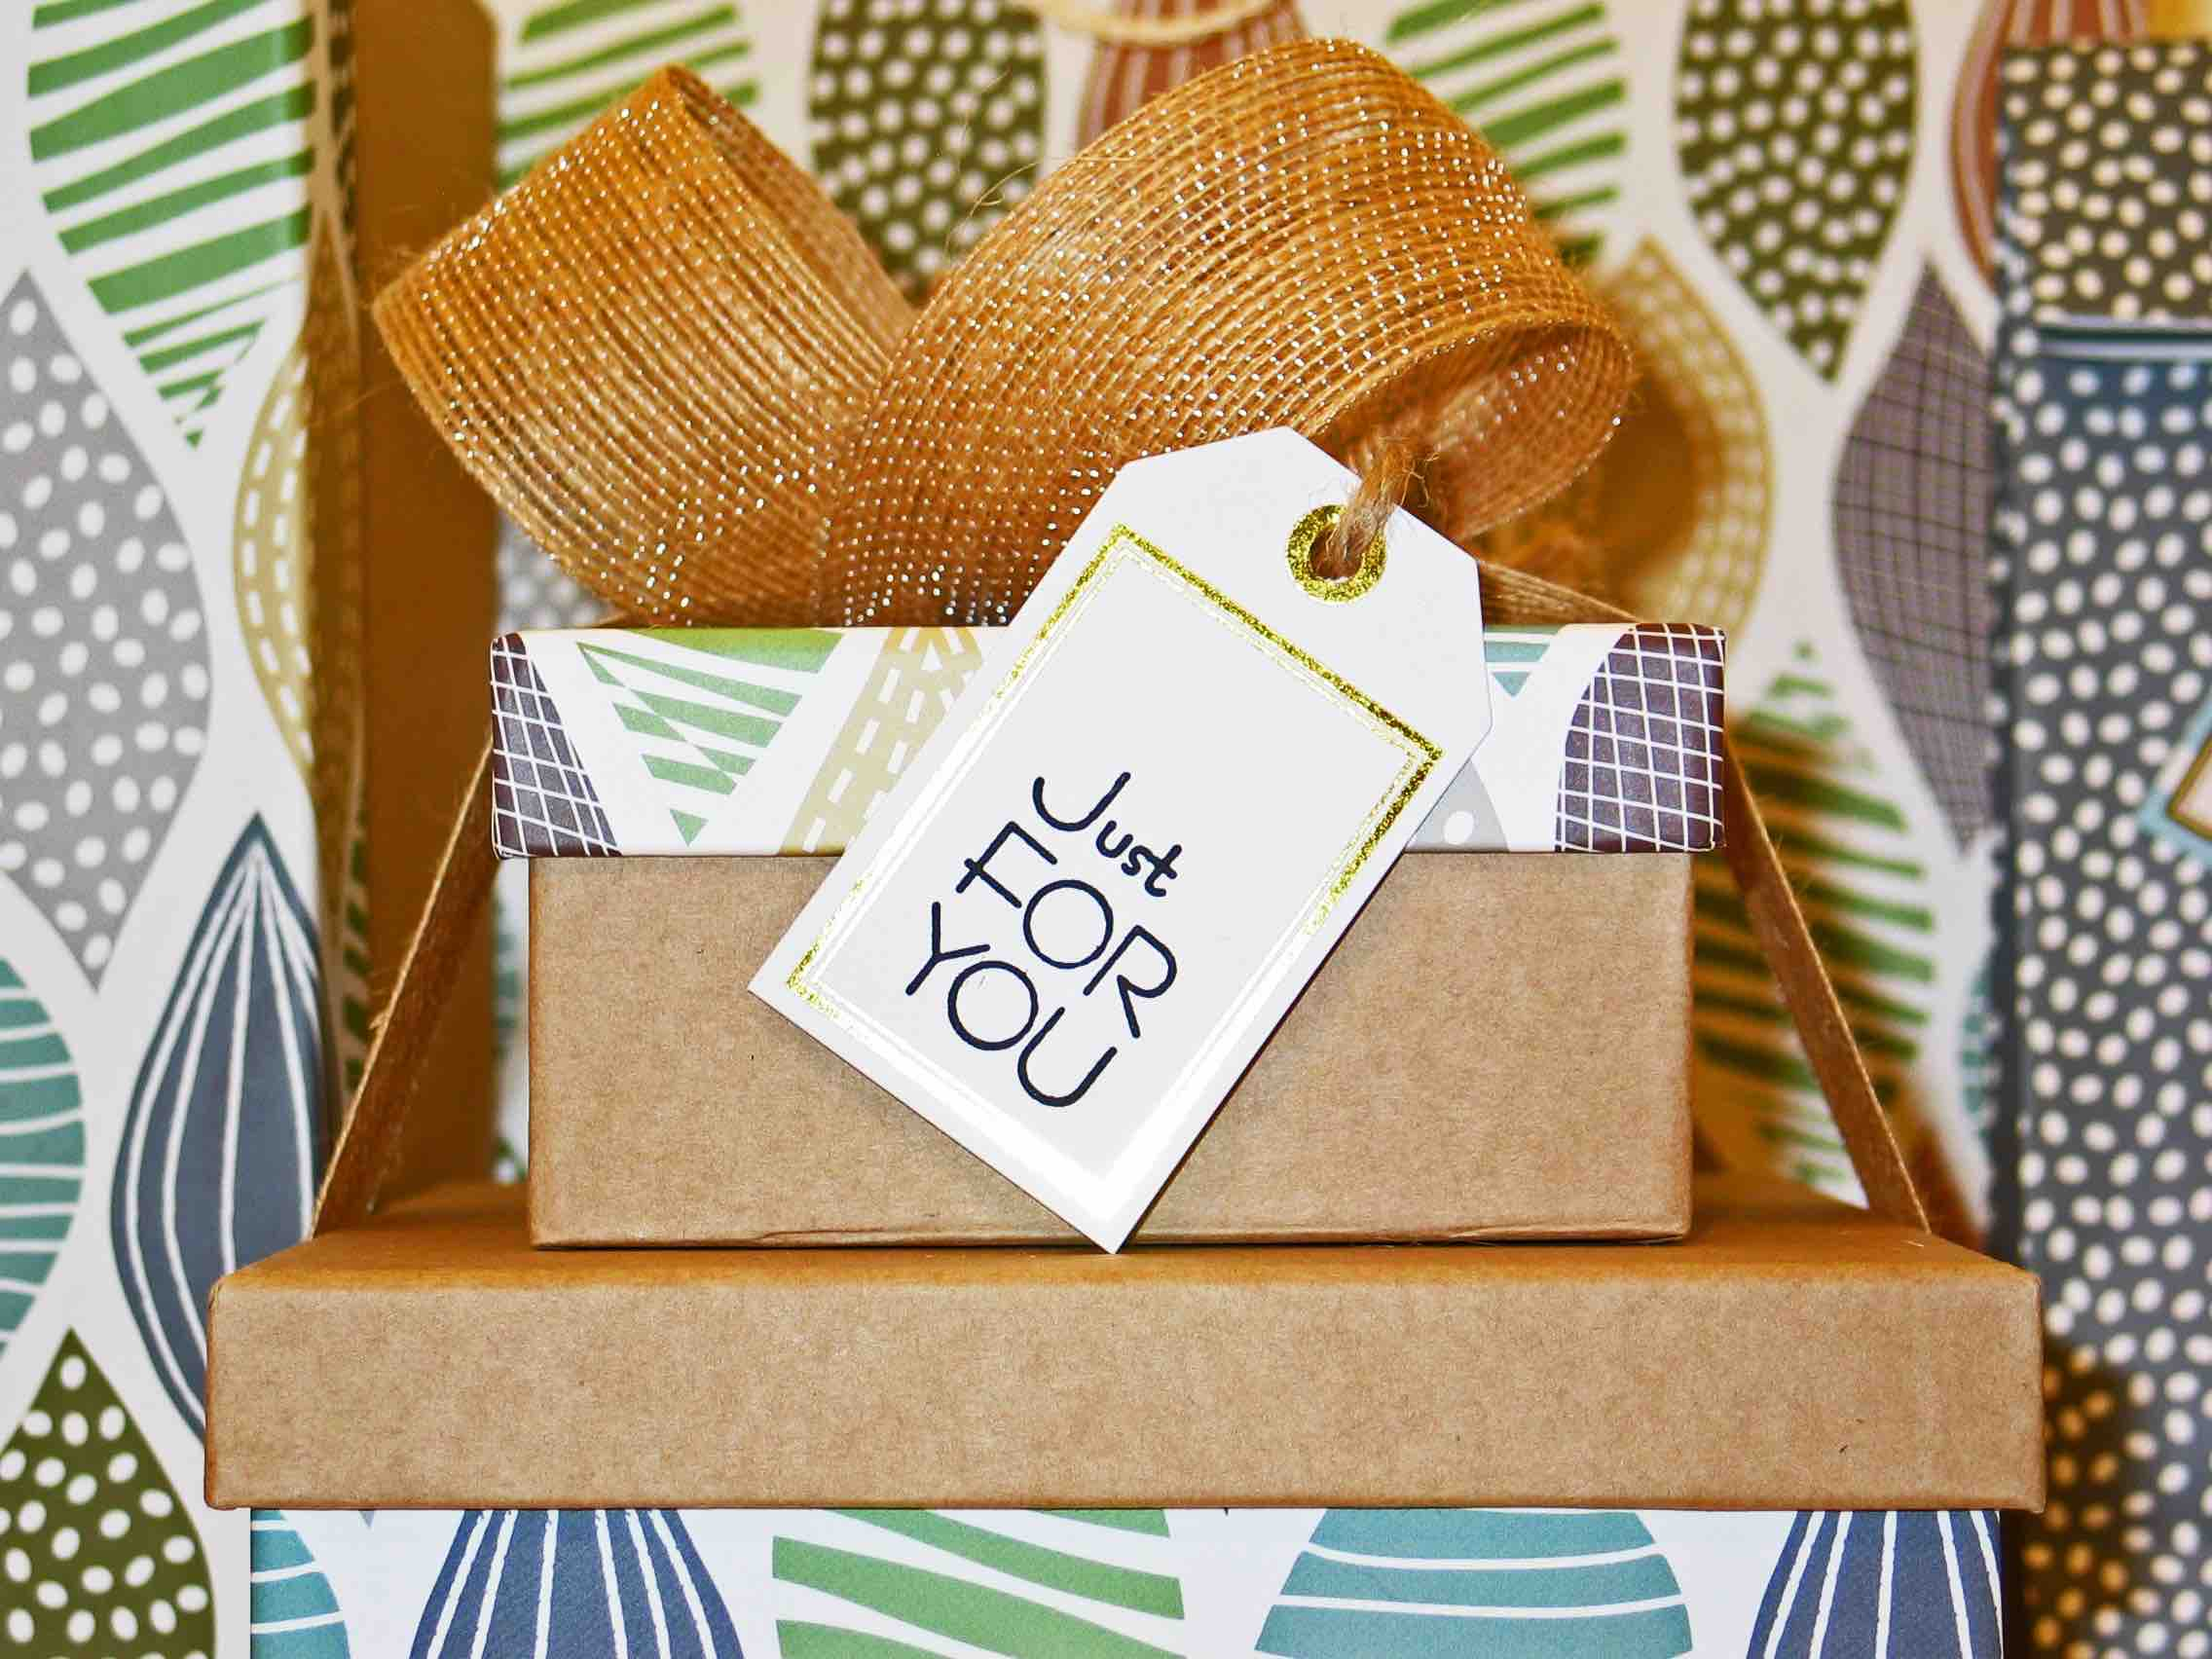 Patterned Gift With Just For You Tag